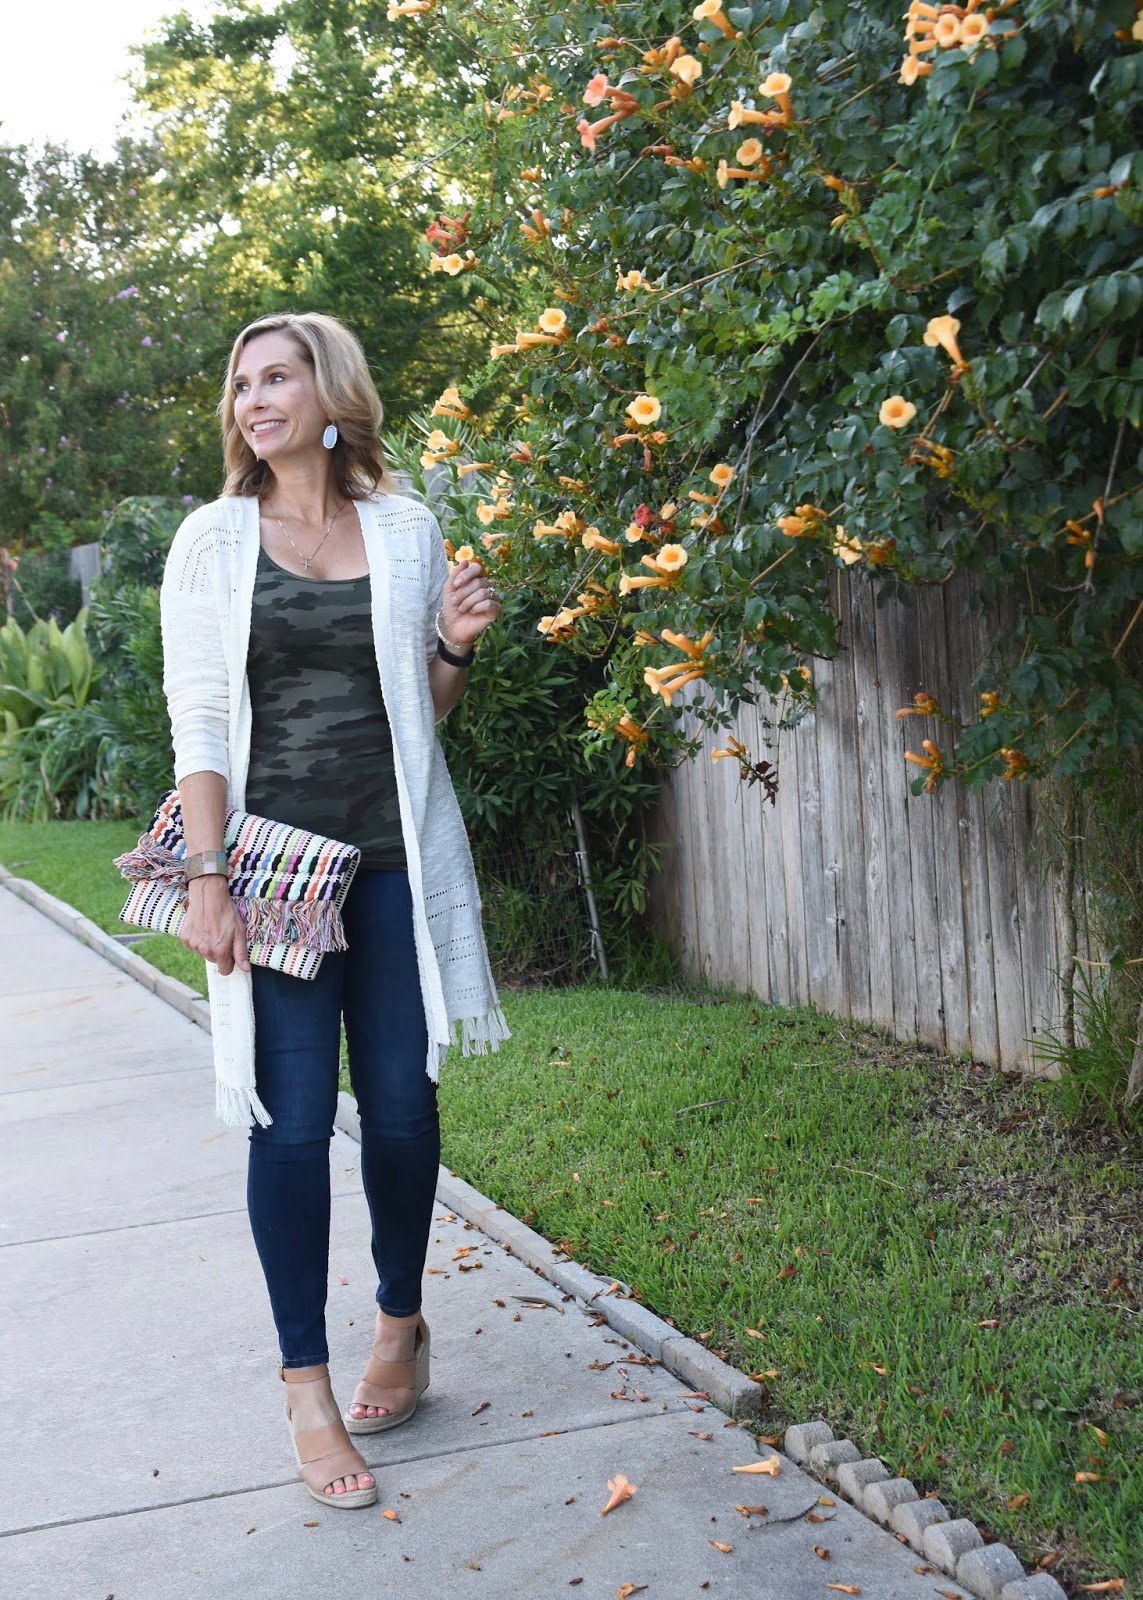 d101fbfa1117db Here's one of the transitional looks I'm loving for fall. You can pop over  to The Queen in Between blog to see a few easy pieces any wardrobe could  use to ...